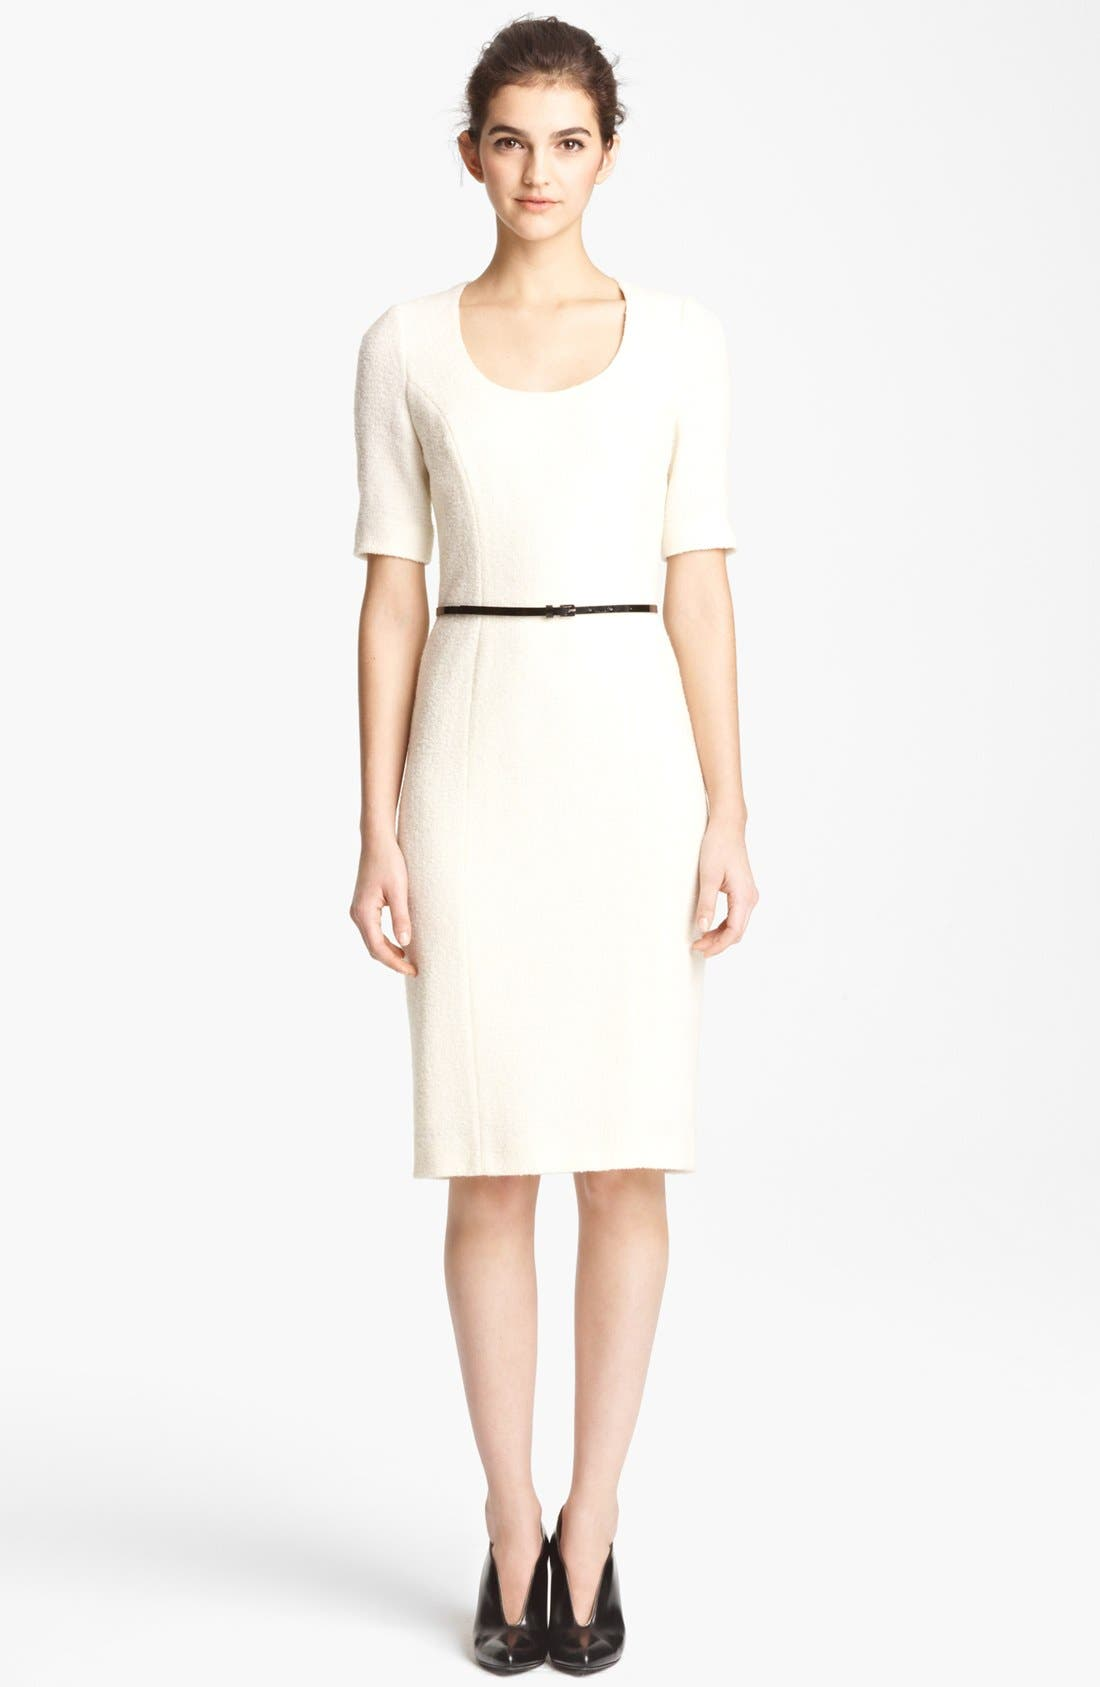 Alternate Image 1 Selected - Moschino Cheap & Chic Dress & Accessories